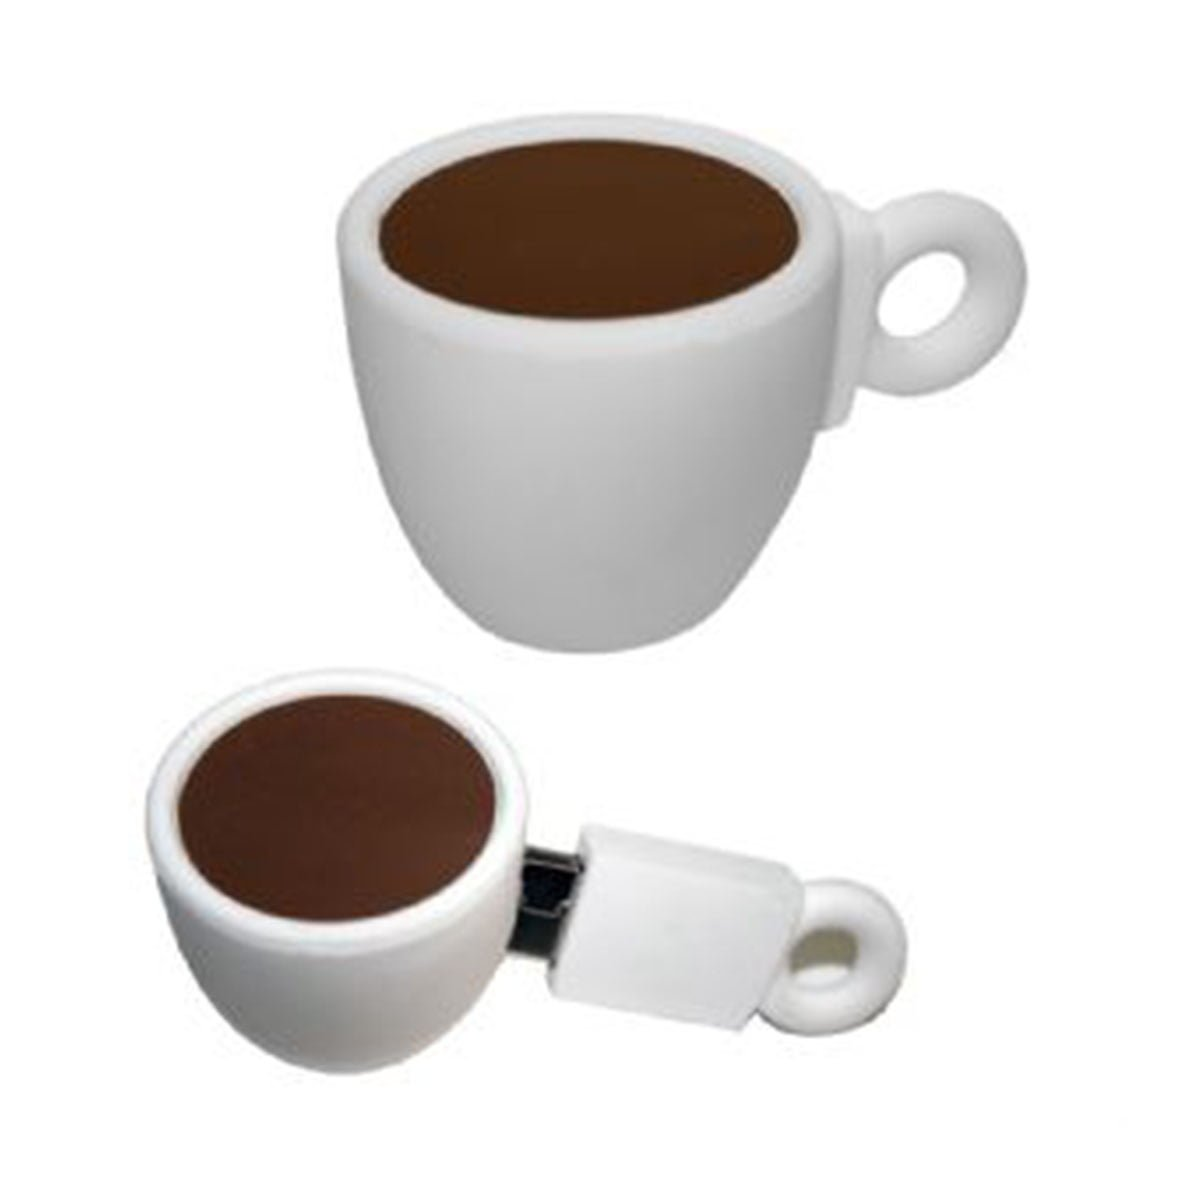 Coffee Cup PVC Flash Drive-You can change up to 2 of the base PVC colours and print your logo in 1-2 colours in 1 position.